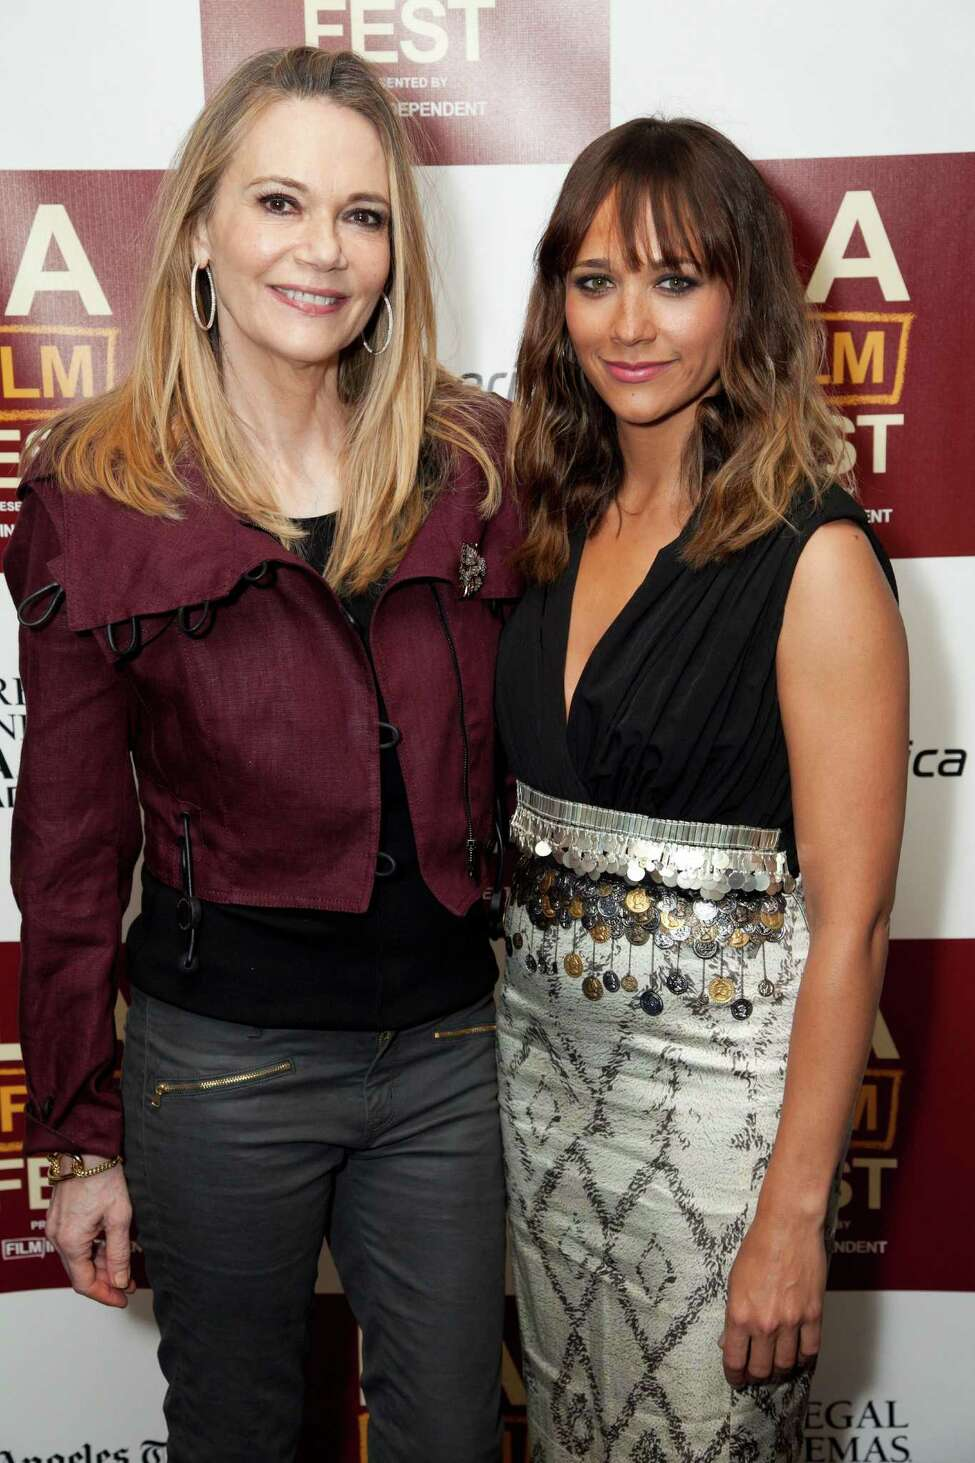 Peggy Lipton (born in 1946) and Rashida Jones (born in 1976)